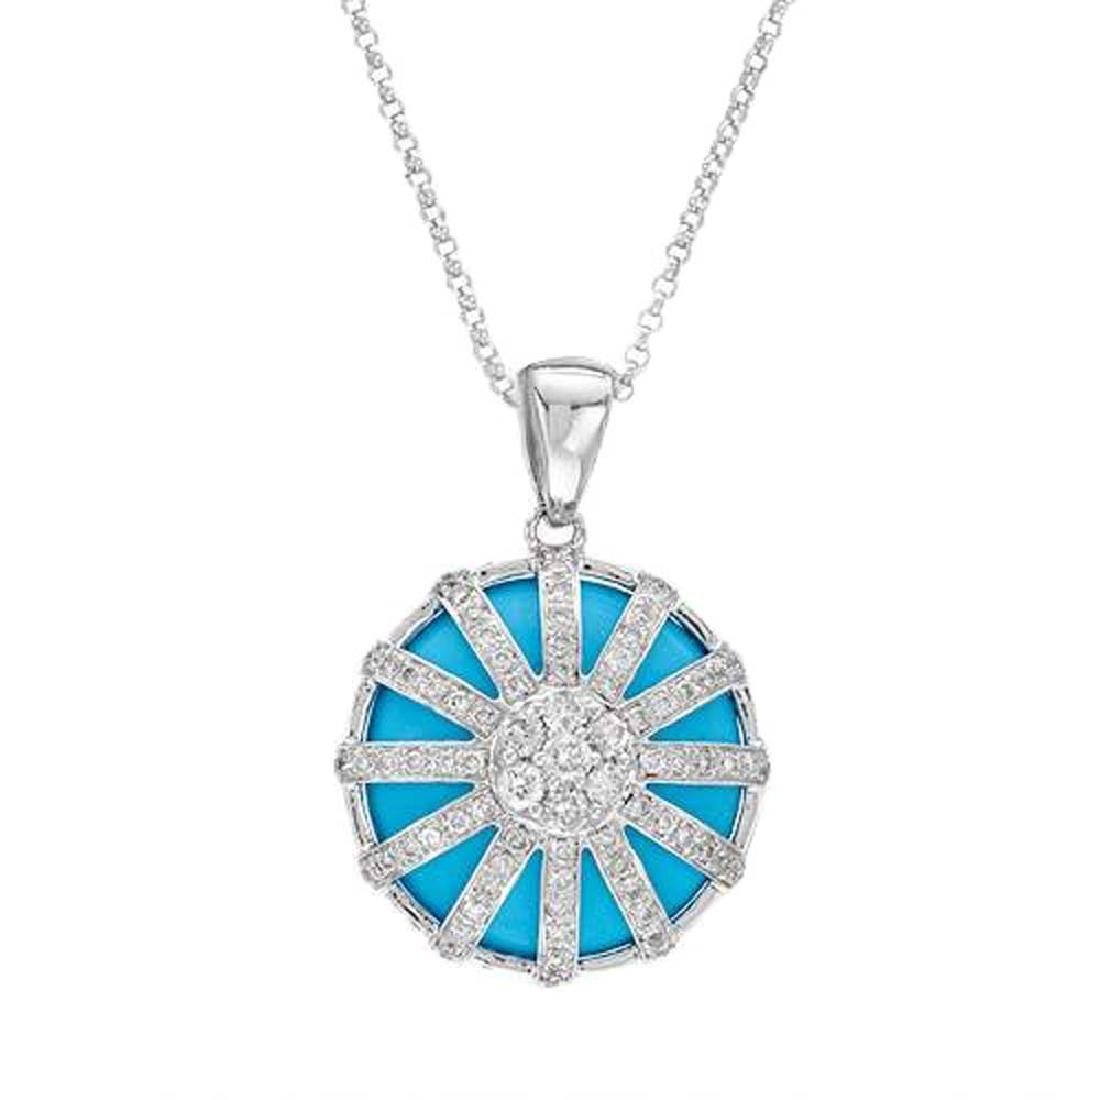 14KT White Gold 9.10ct Turquoise and Diamond Pendant